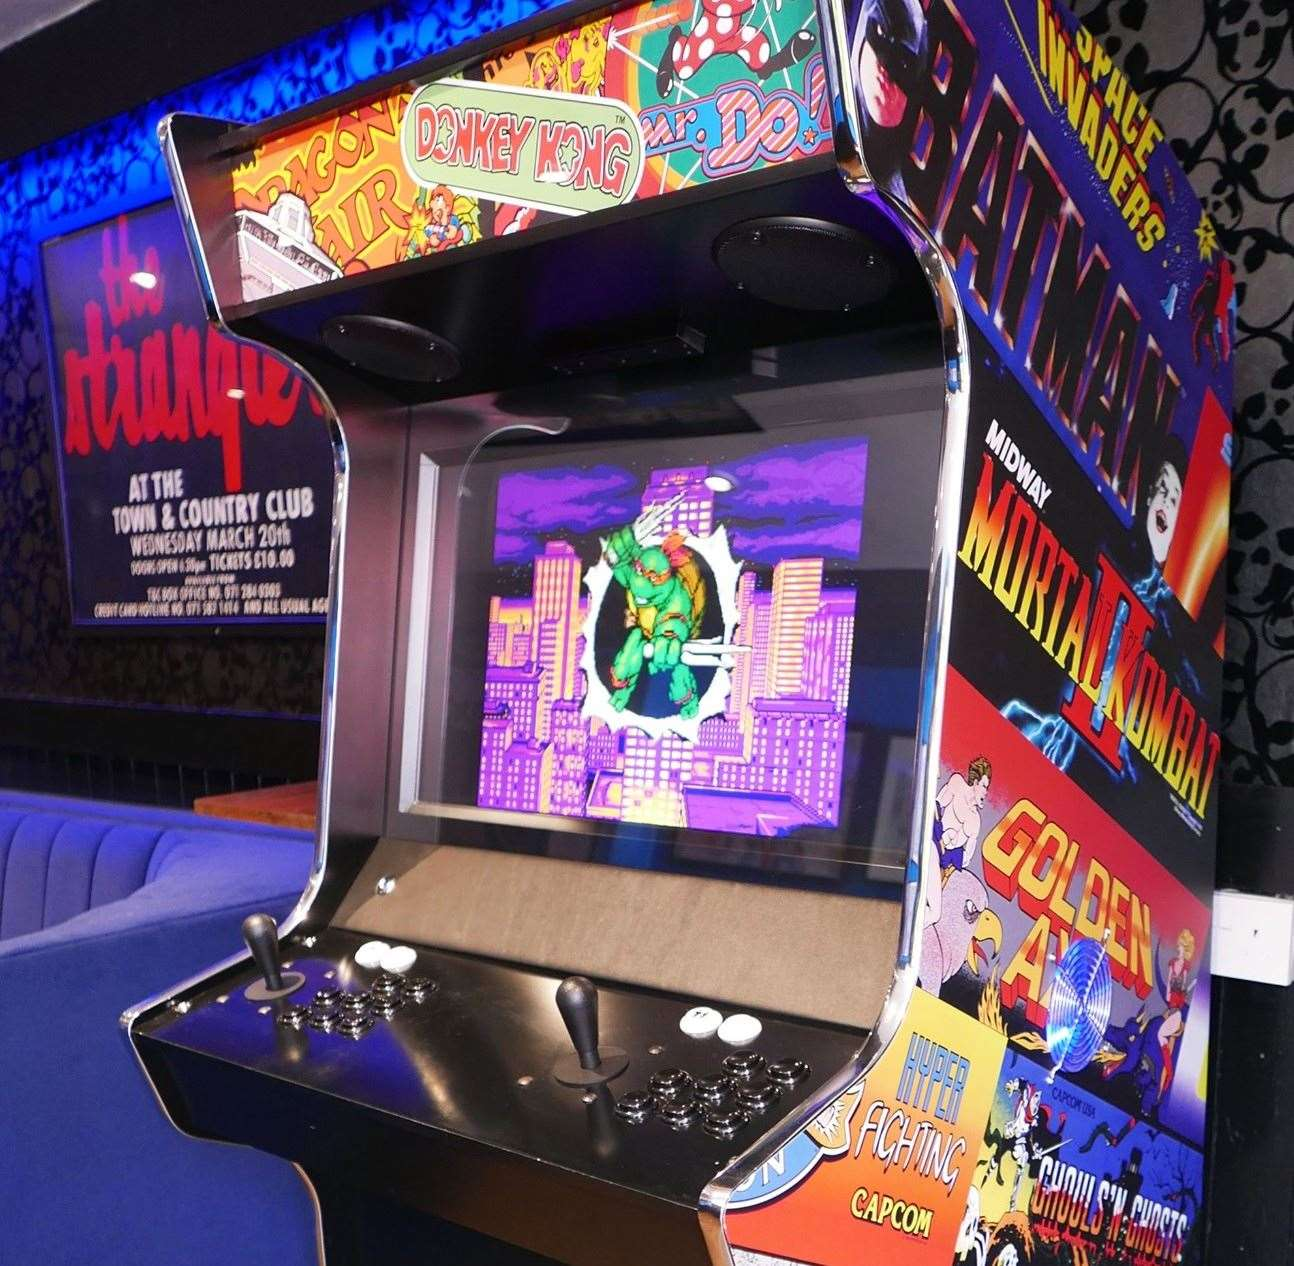 The Lady Luck has a retro arcade machine which is free to play